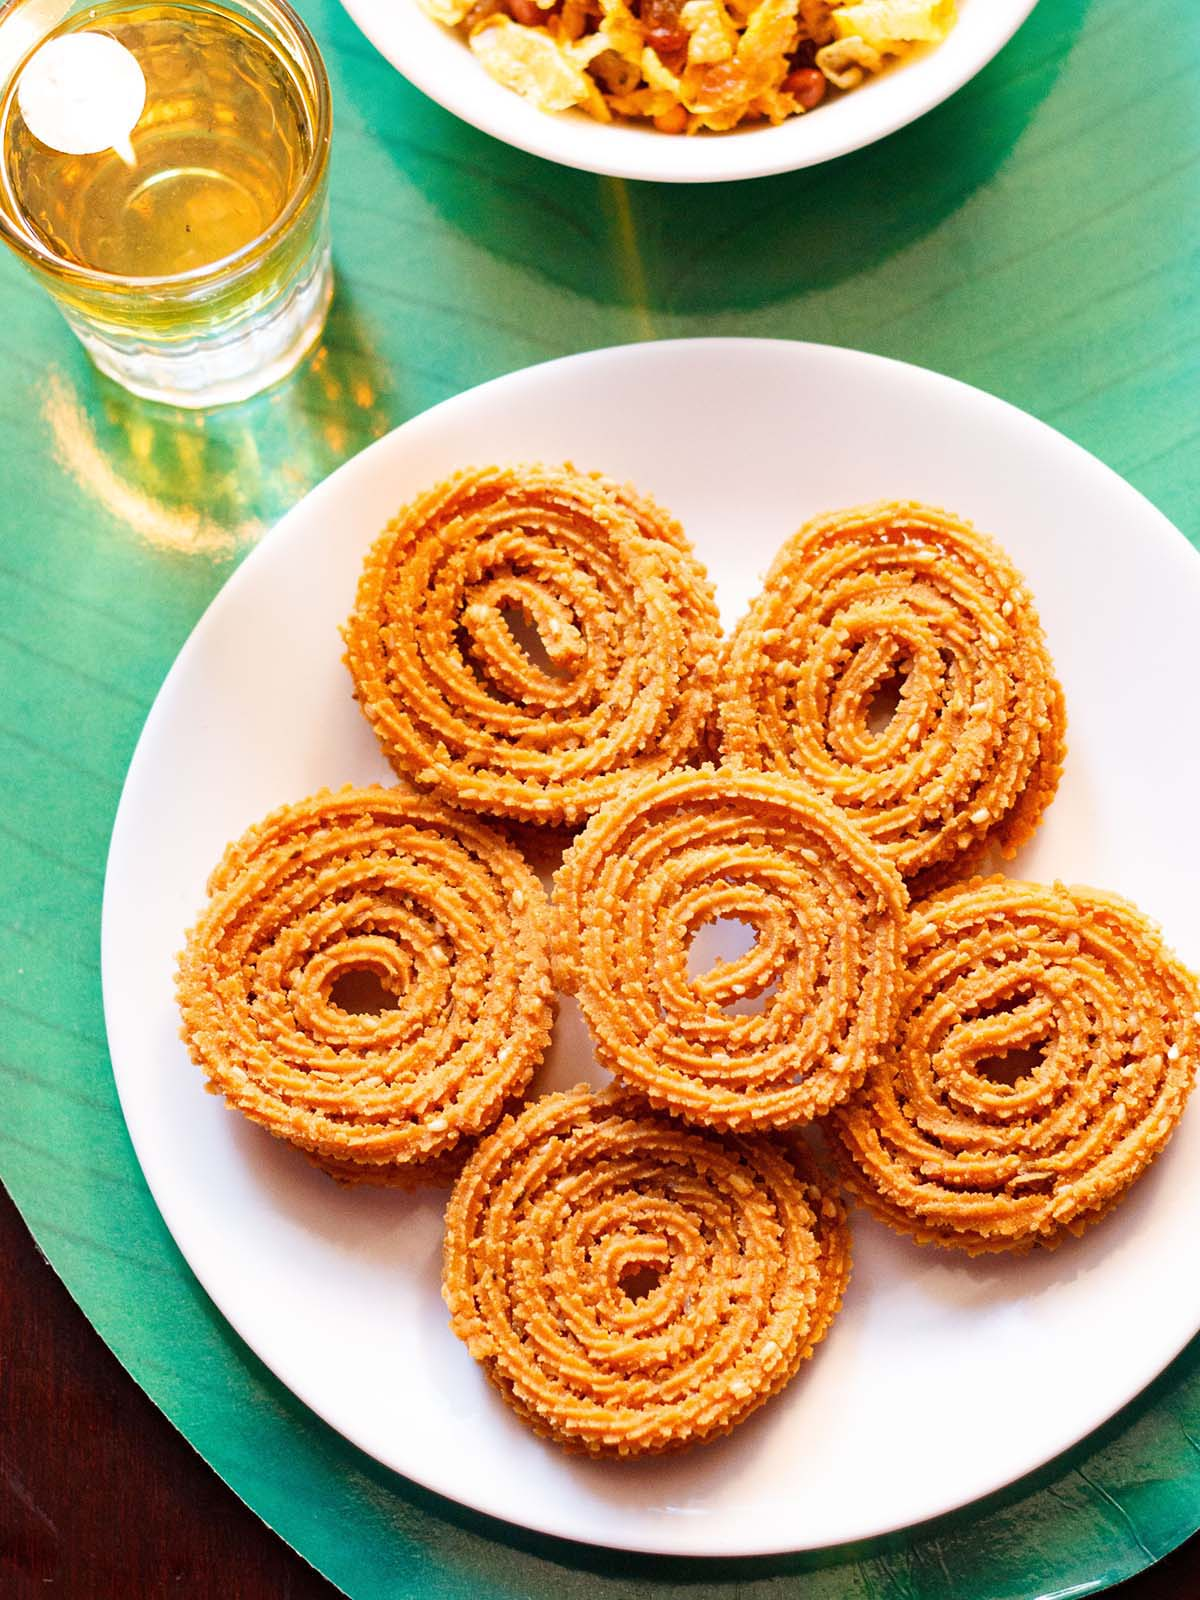 fchakli kept in a round circle with a chakli in the center on a white plate on a green background